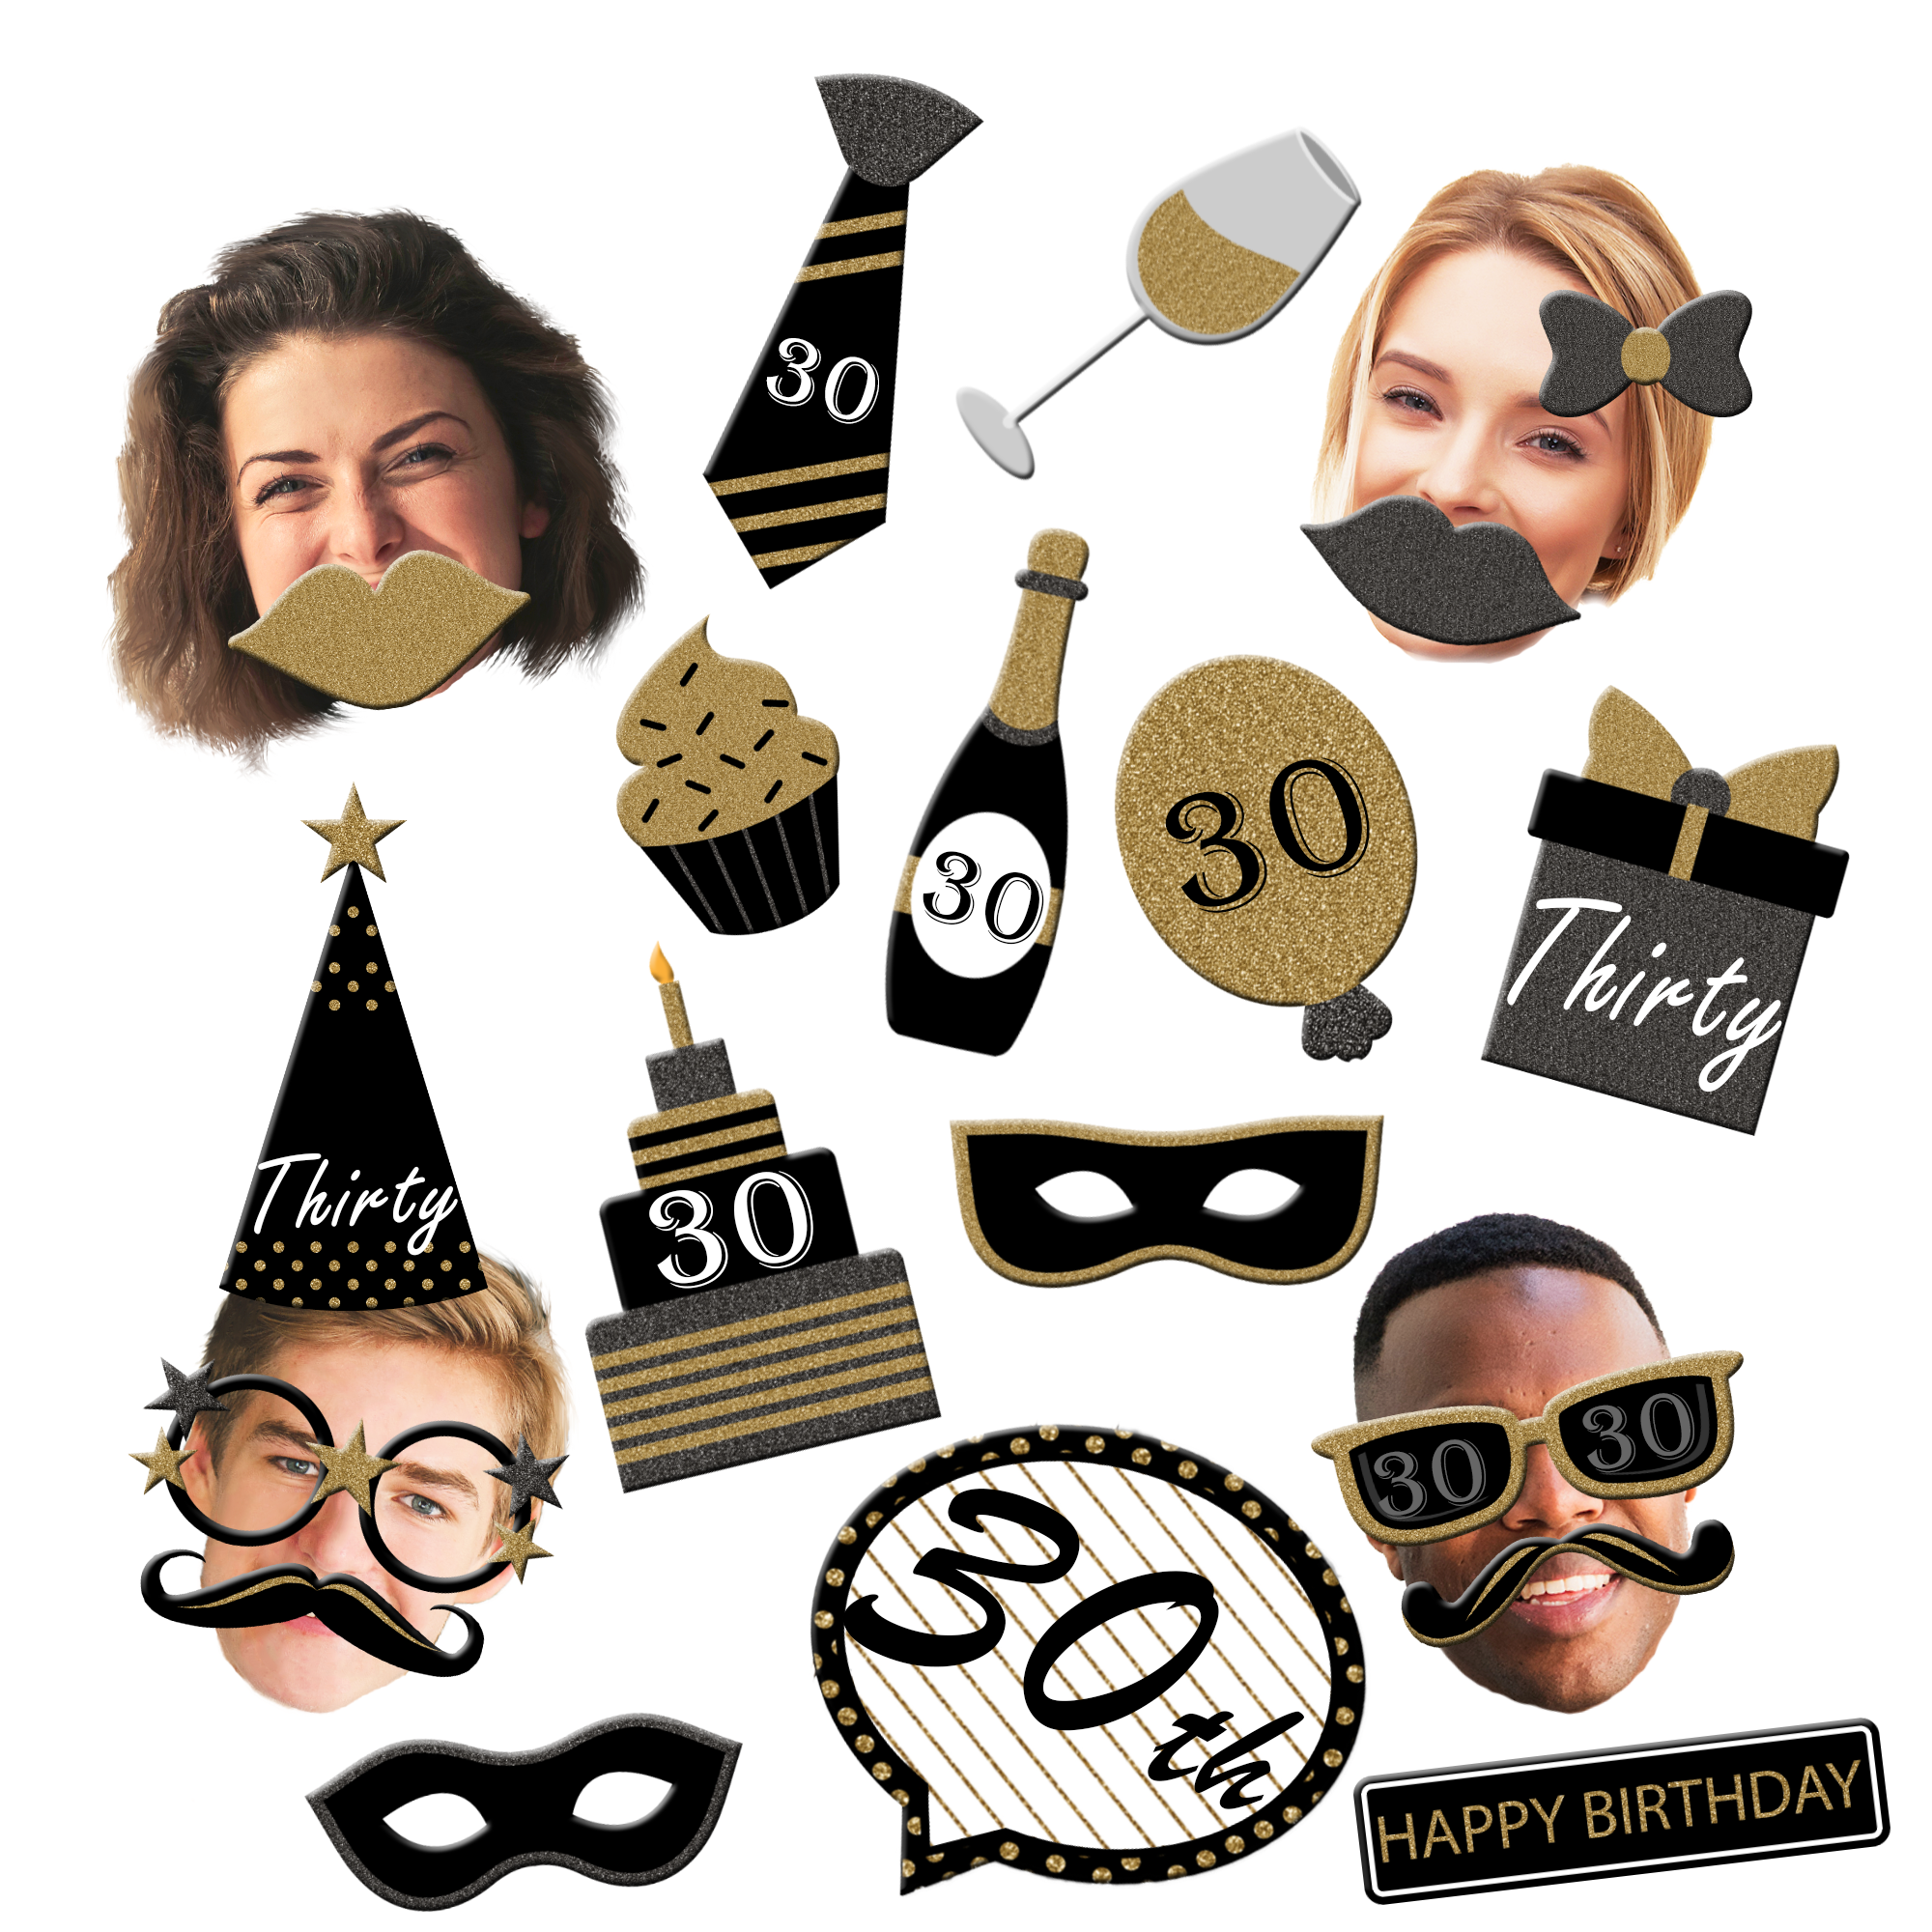 30th Birthday Black & Gold Photo Booth Props 20pcs Assembled - BirthdayGalore.com